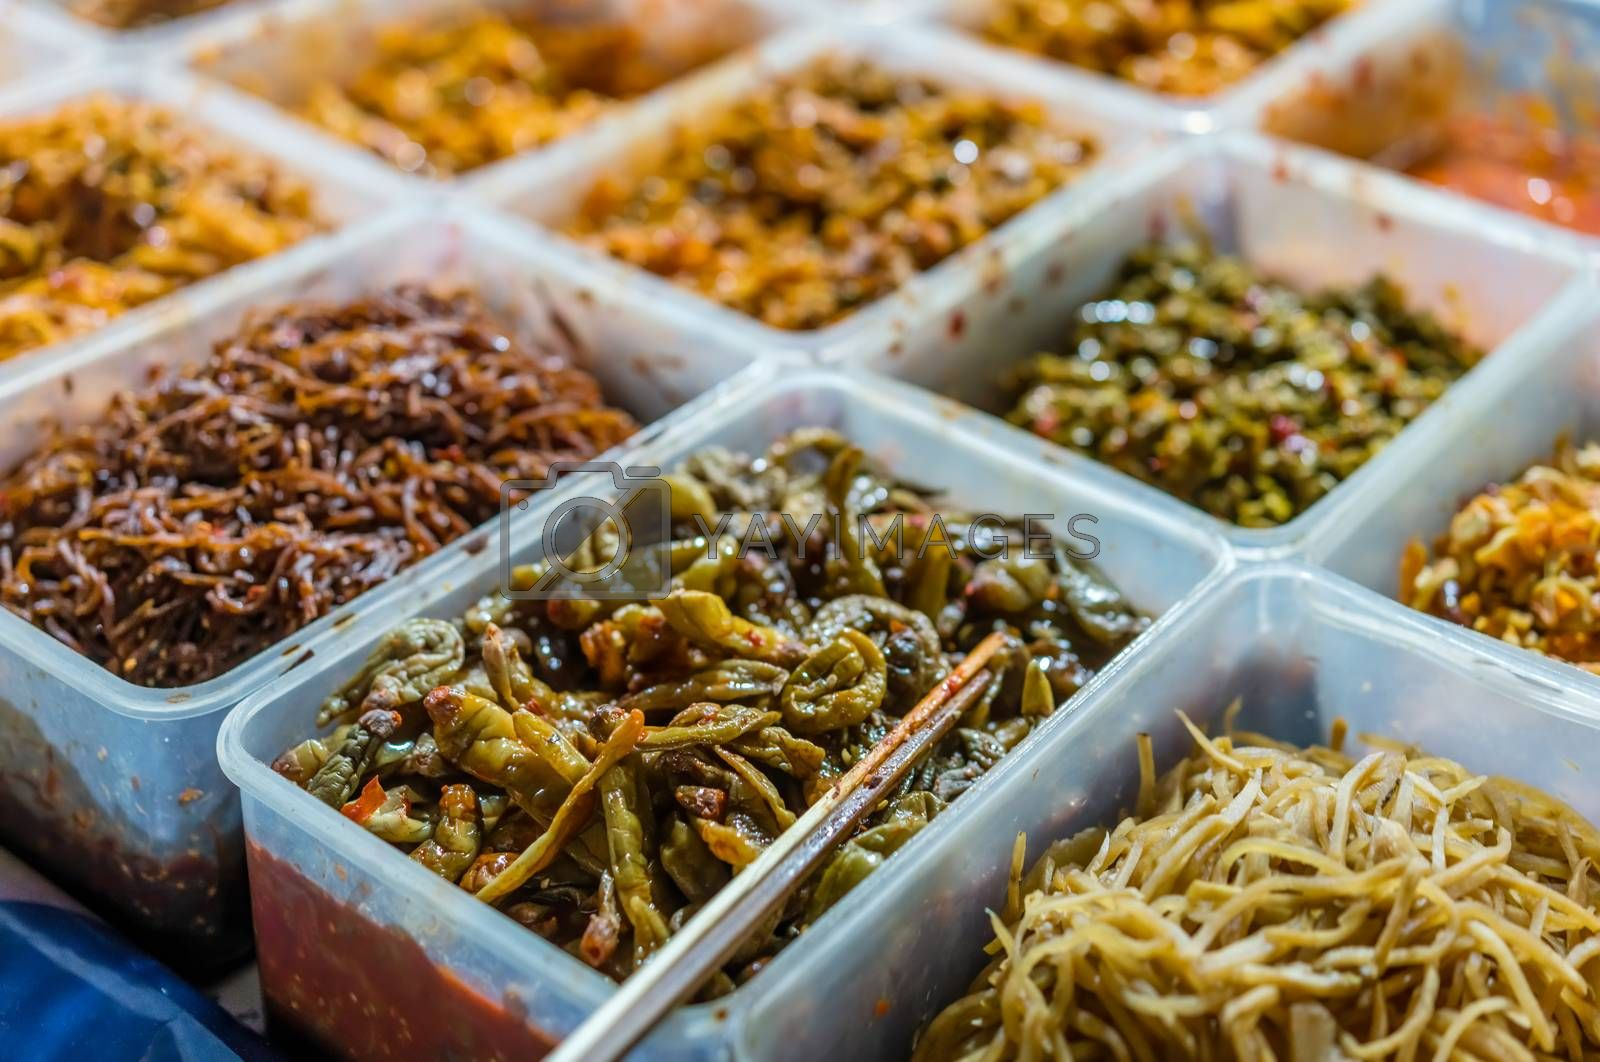 Buffet of plastic boxes with spicy additions to food ordered from an outdoor street food stall, China